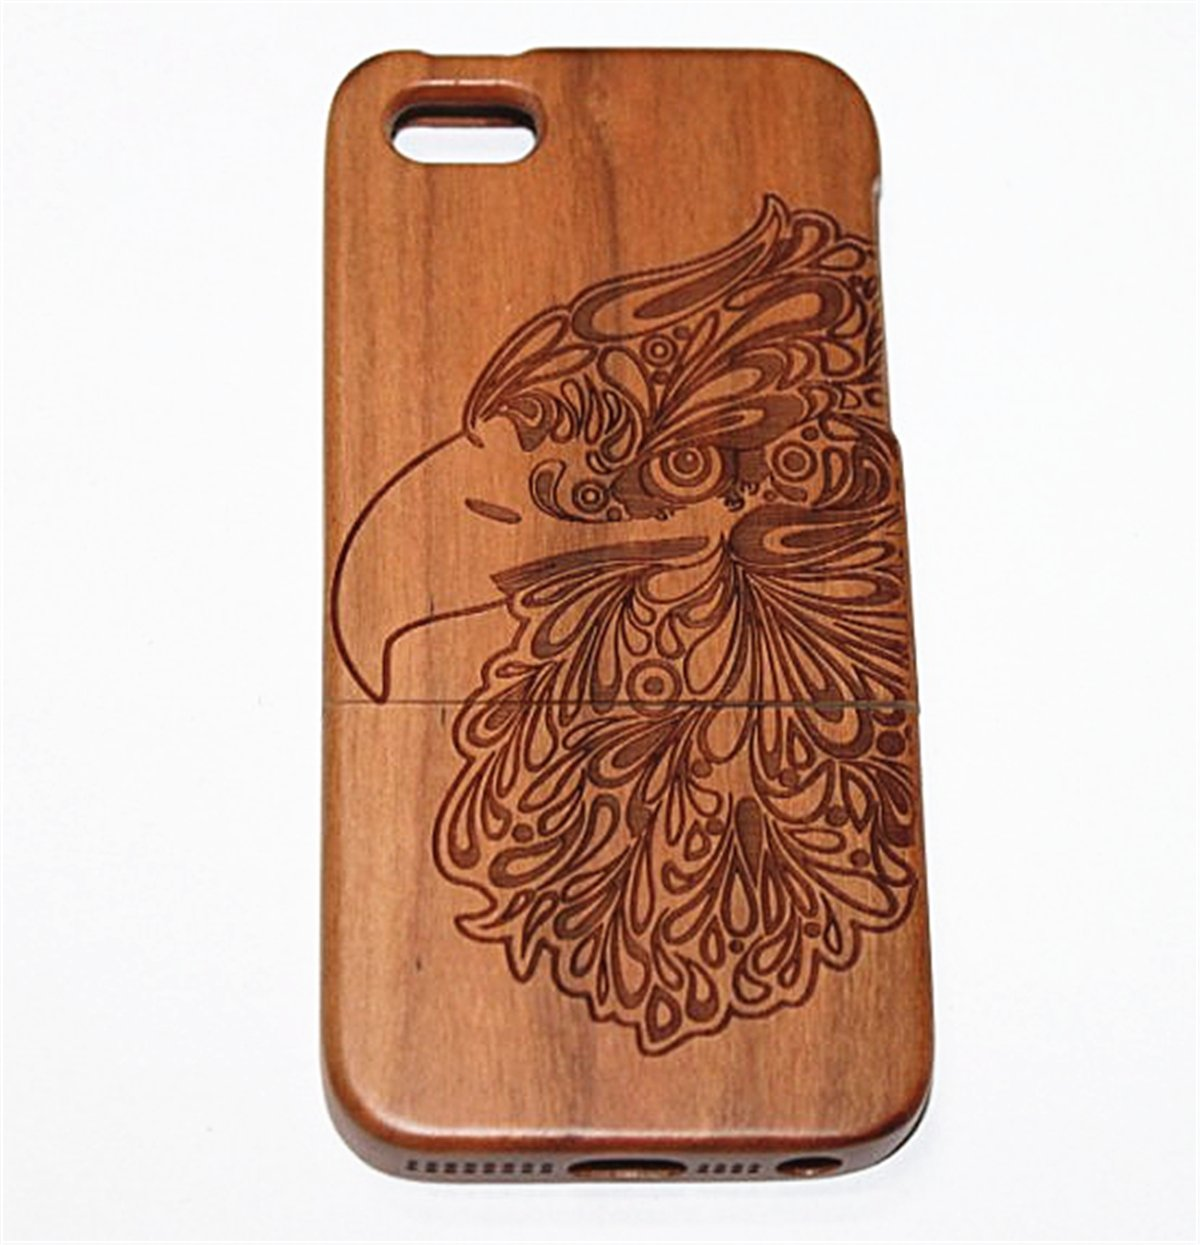 iPhone 6/6S Plus Case, Firefish Unique Eco-Friendly 100% Real Natural Wood With Laser Engraved Pattern Drop & Shock Protective Super Hard Shell Case For iPhone 6/6S Plus -Eagle